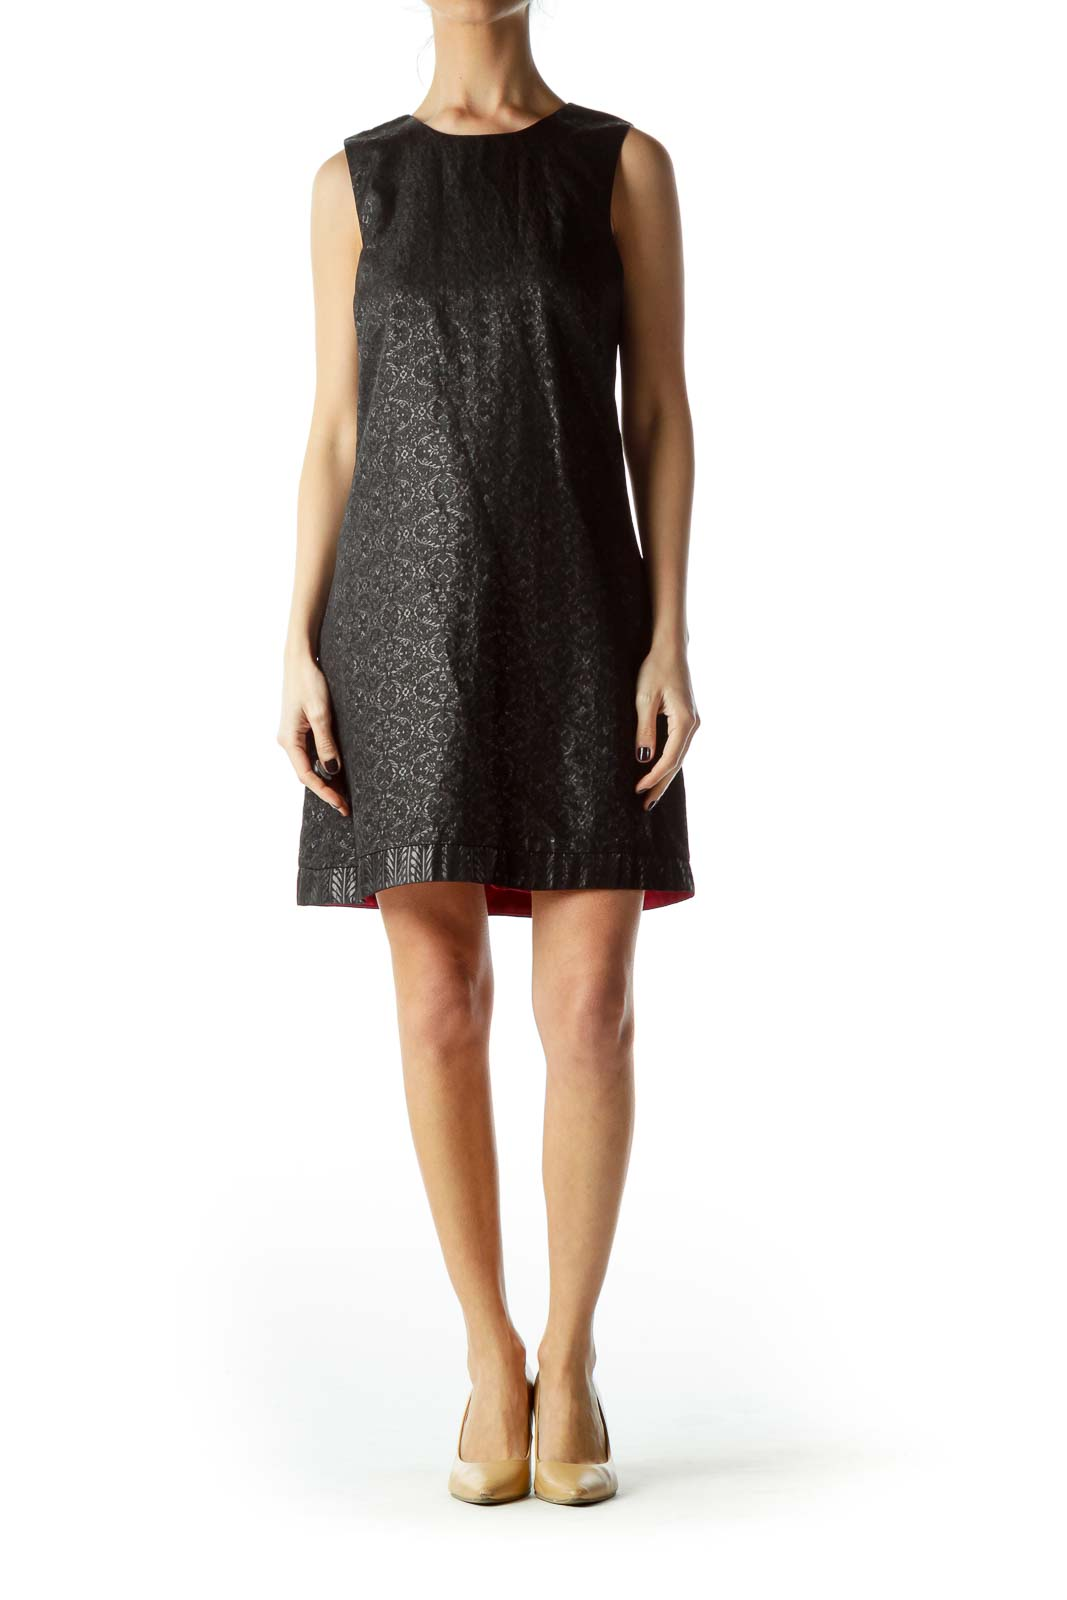 Black Metallic Texture Cocktail Dress